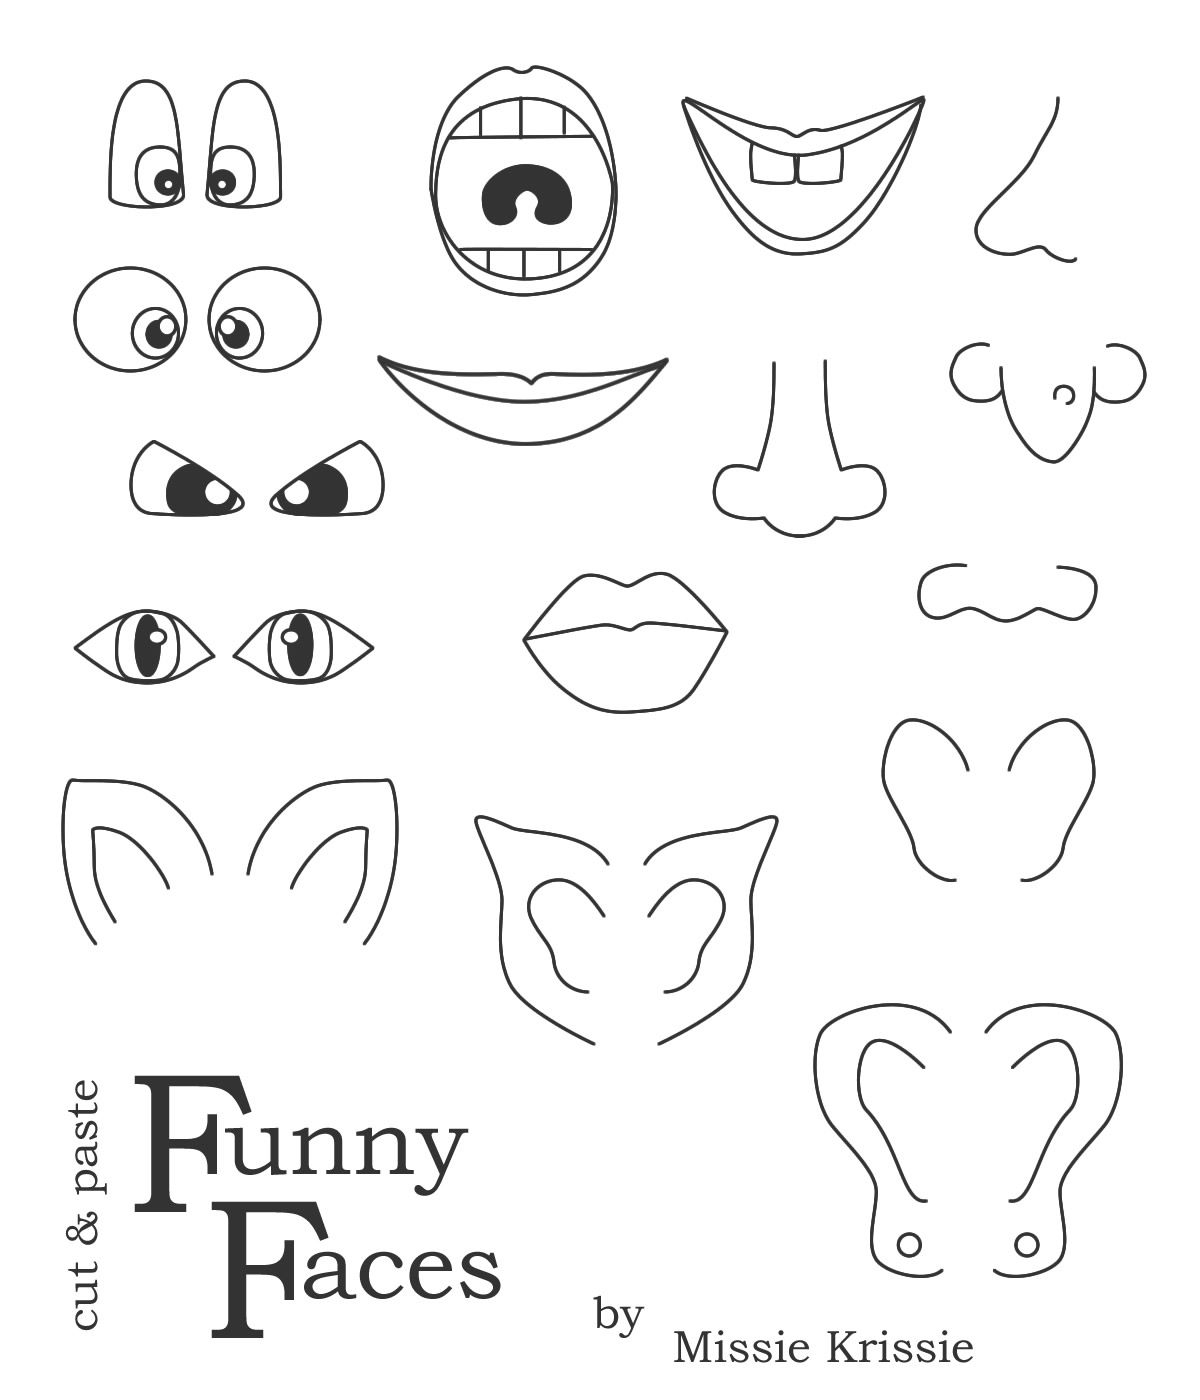 Feelings Coloring Pages for Preschoolers  Download 16s - Free For kids